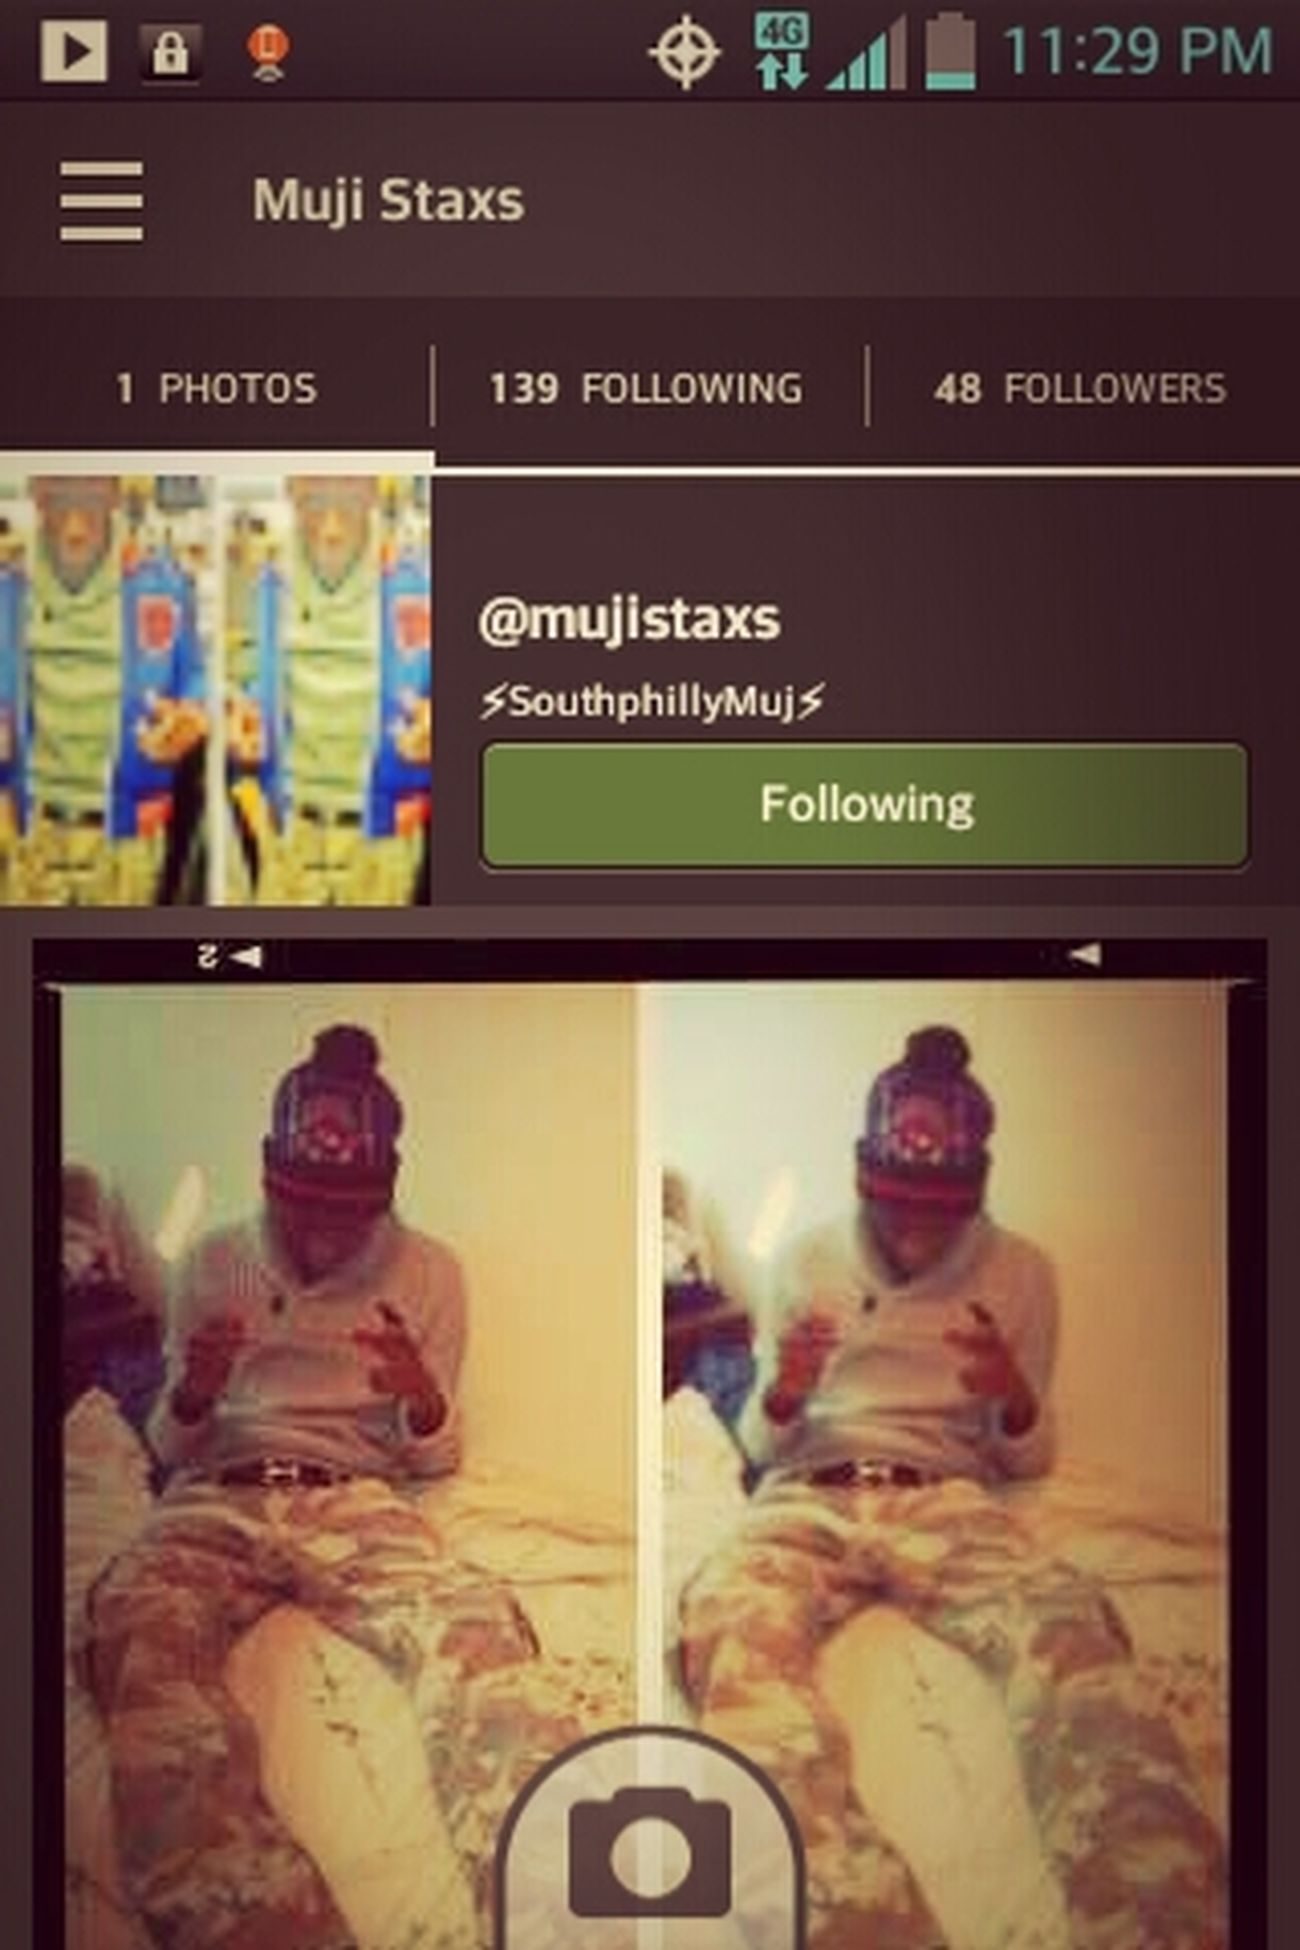 Yoo Everybody Goo Follow My Manz @mujistaxs He A Good Look '